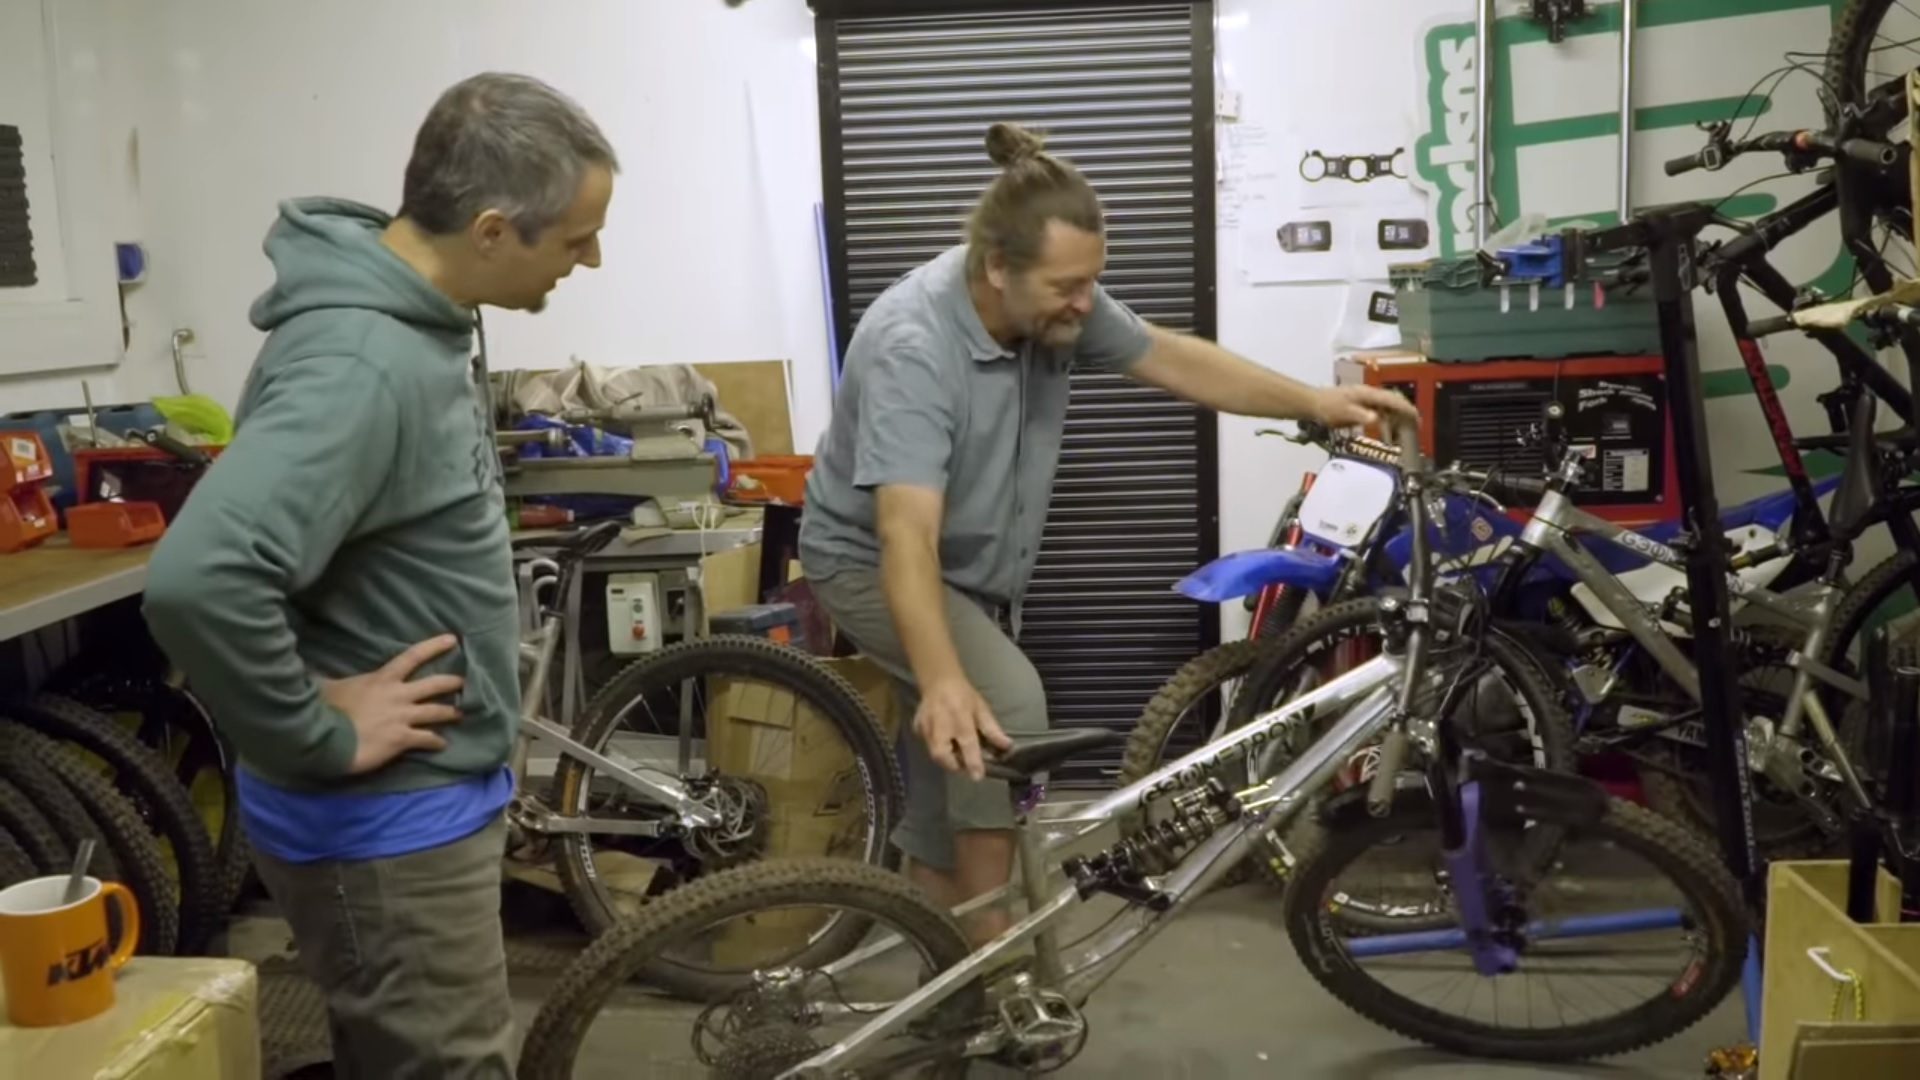 Next Level Bike Geometry: An Interview with Chris Porter